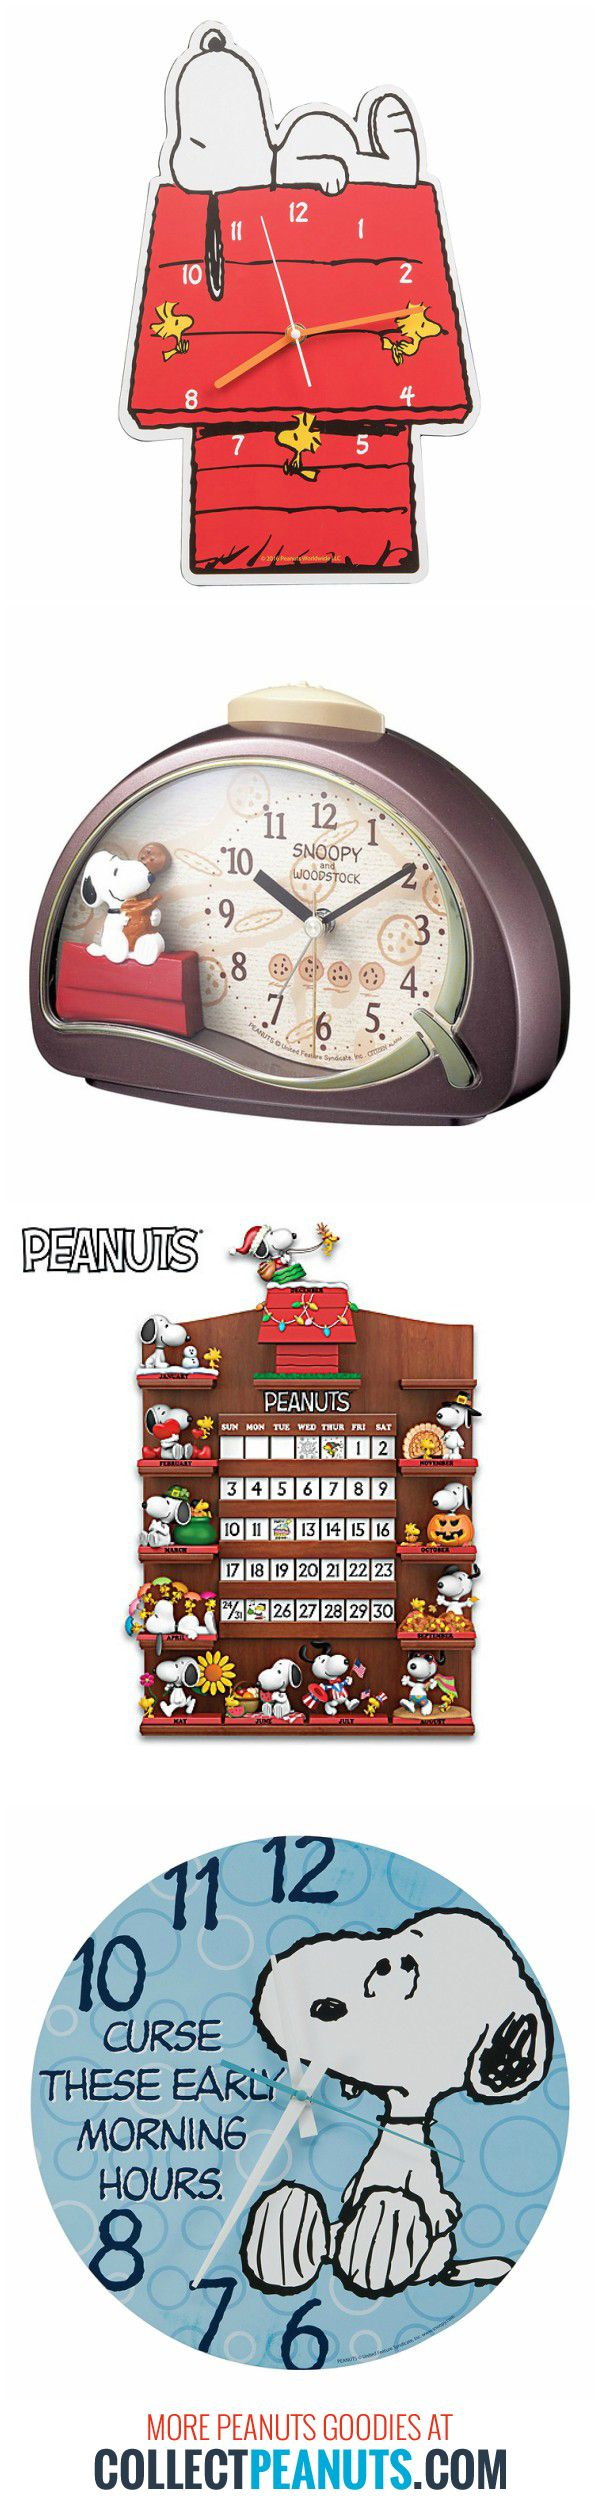 Happy New Year! Keep track of the passing time with Snoopy and Peanuts clocks, watches and perpetual calendars. Save time by shopping our round-up at CollectPeanuts.com.